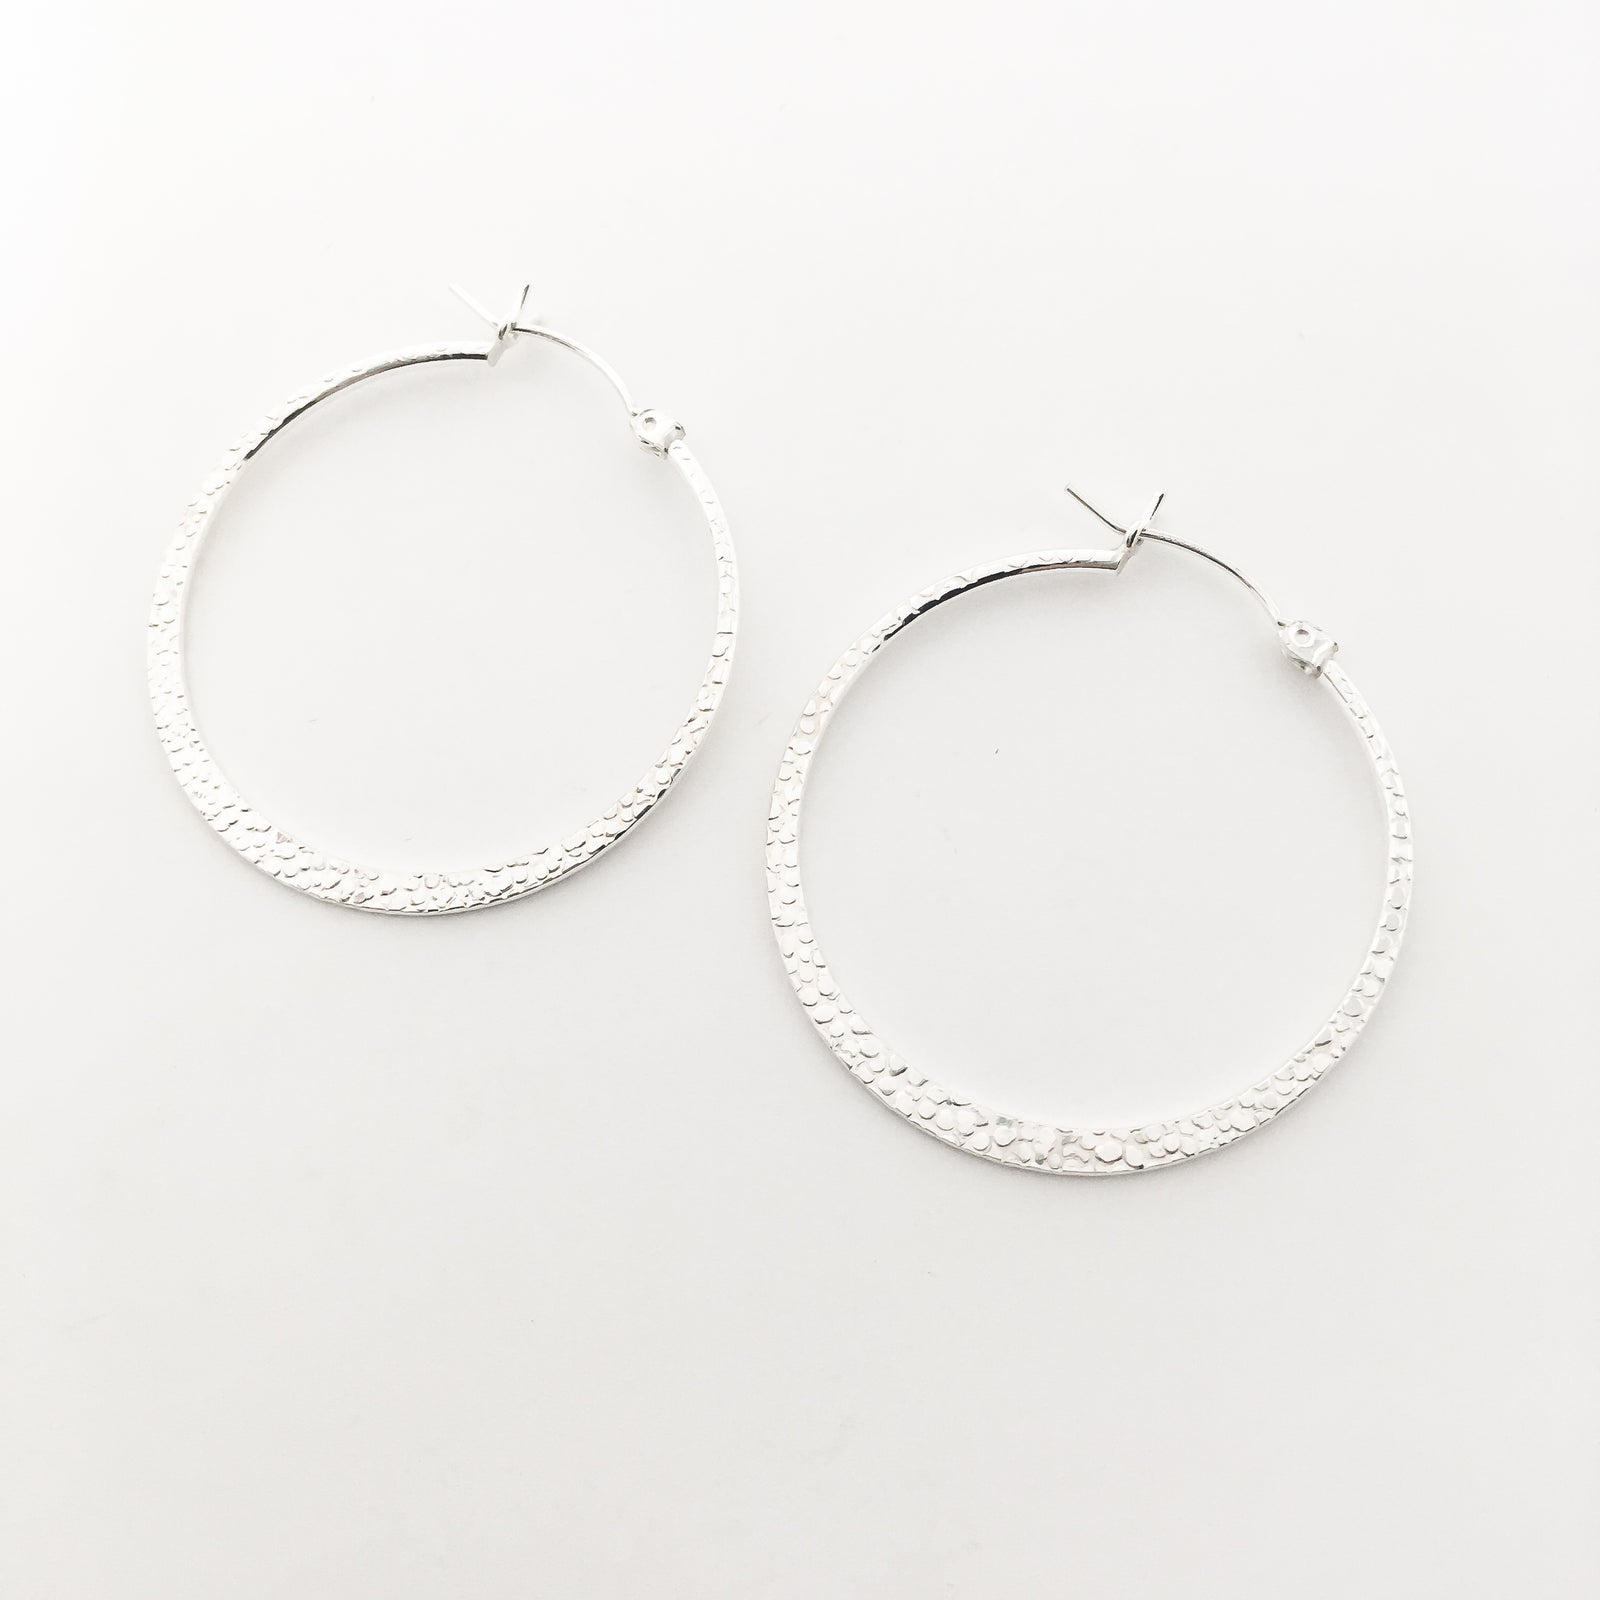 TEXTURED HOOPS | STERLING SILVER